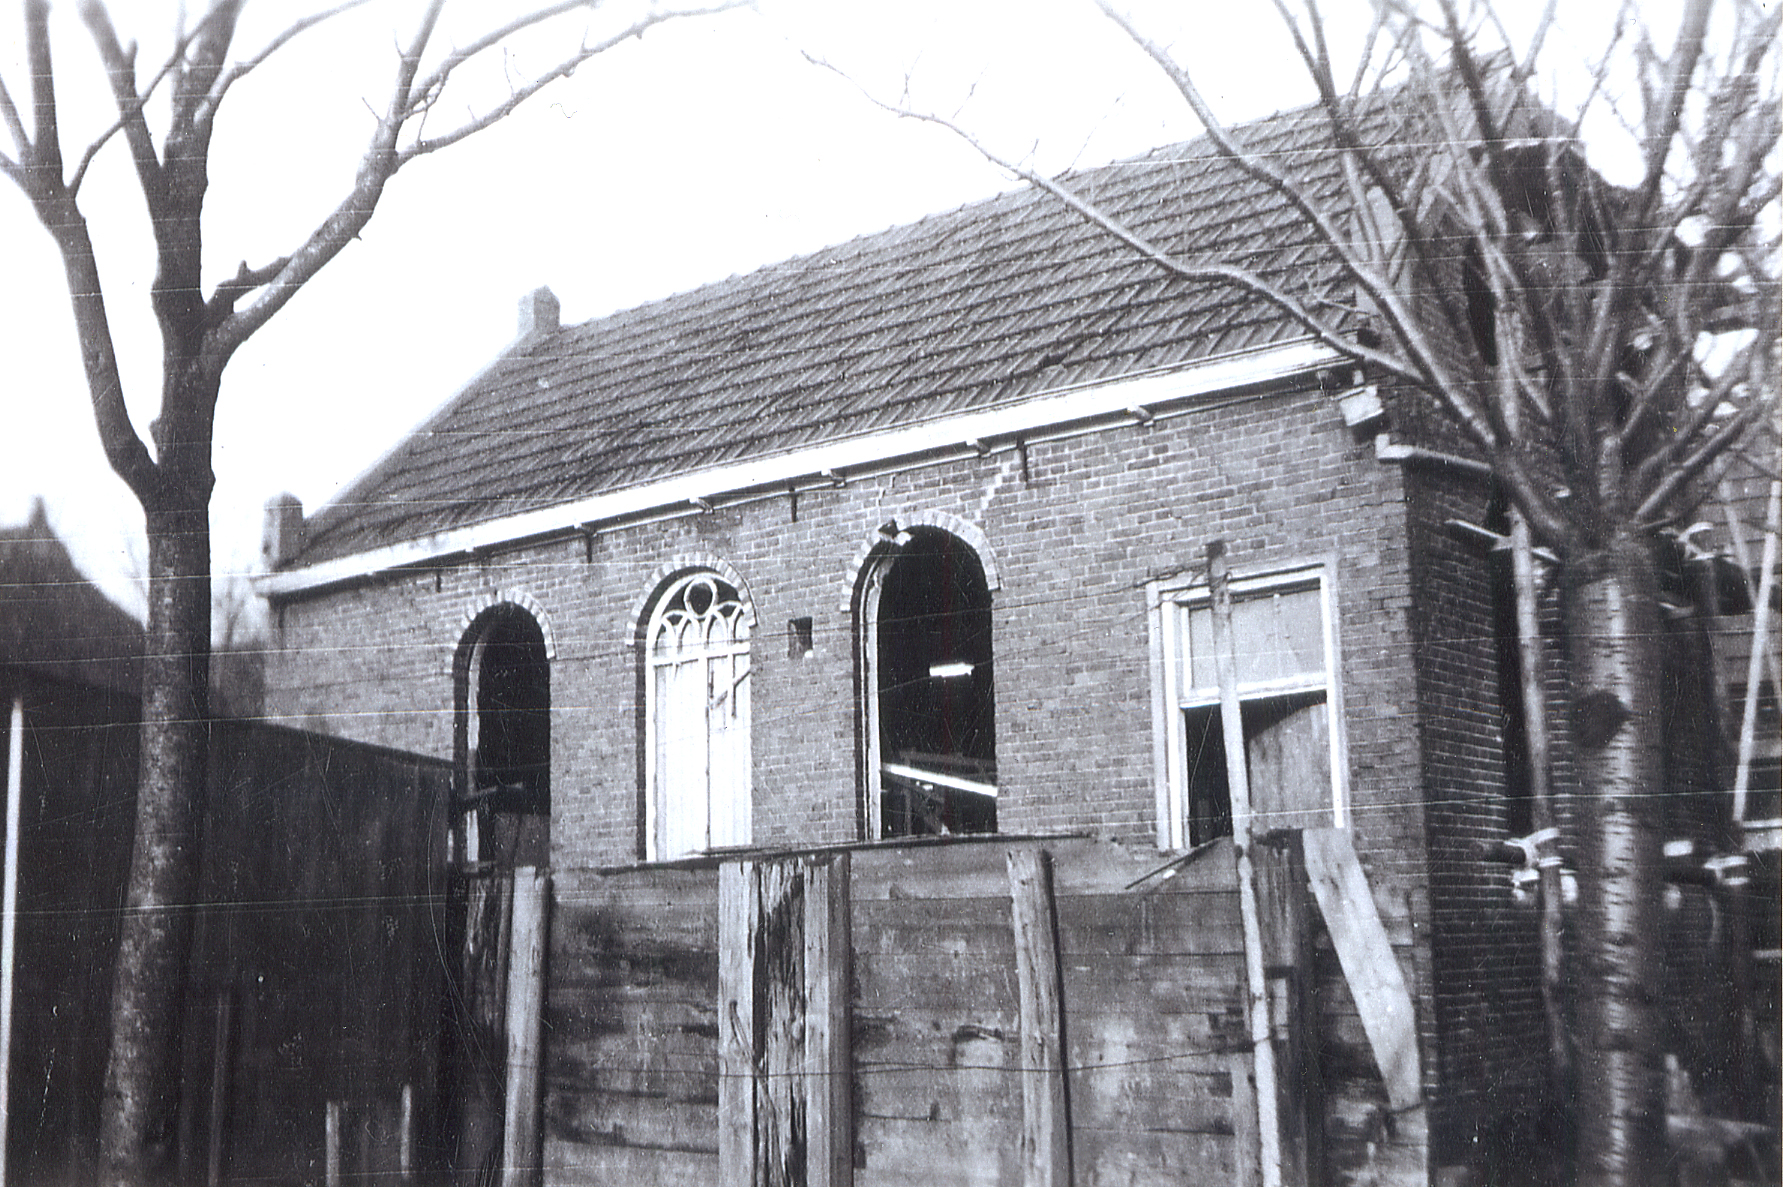 Leens' synagogue, photographed in 1945. The windows were vandalised during the Nazi occupation of the Netherlands.